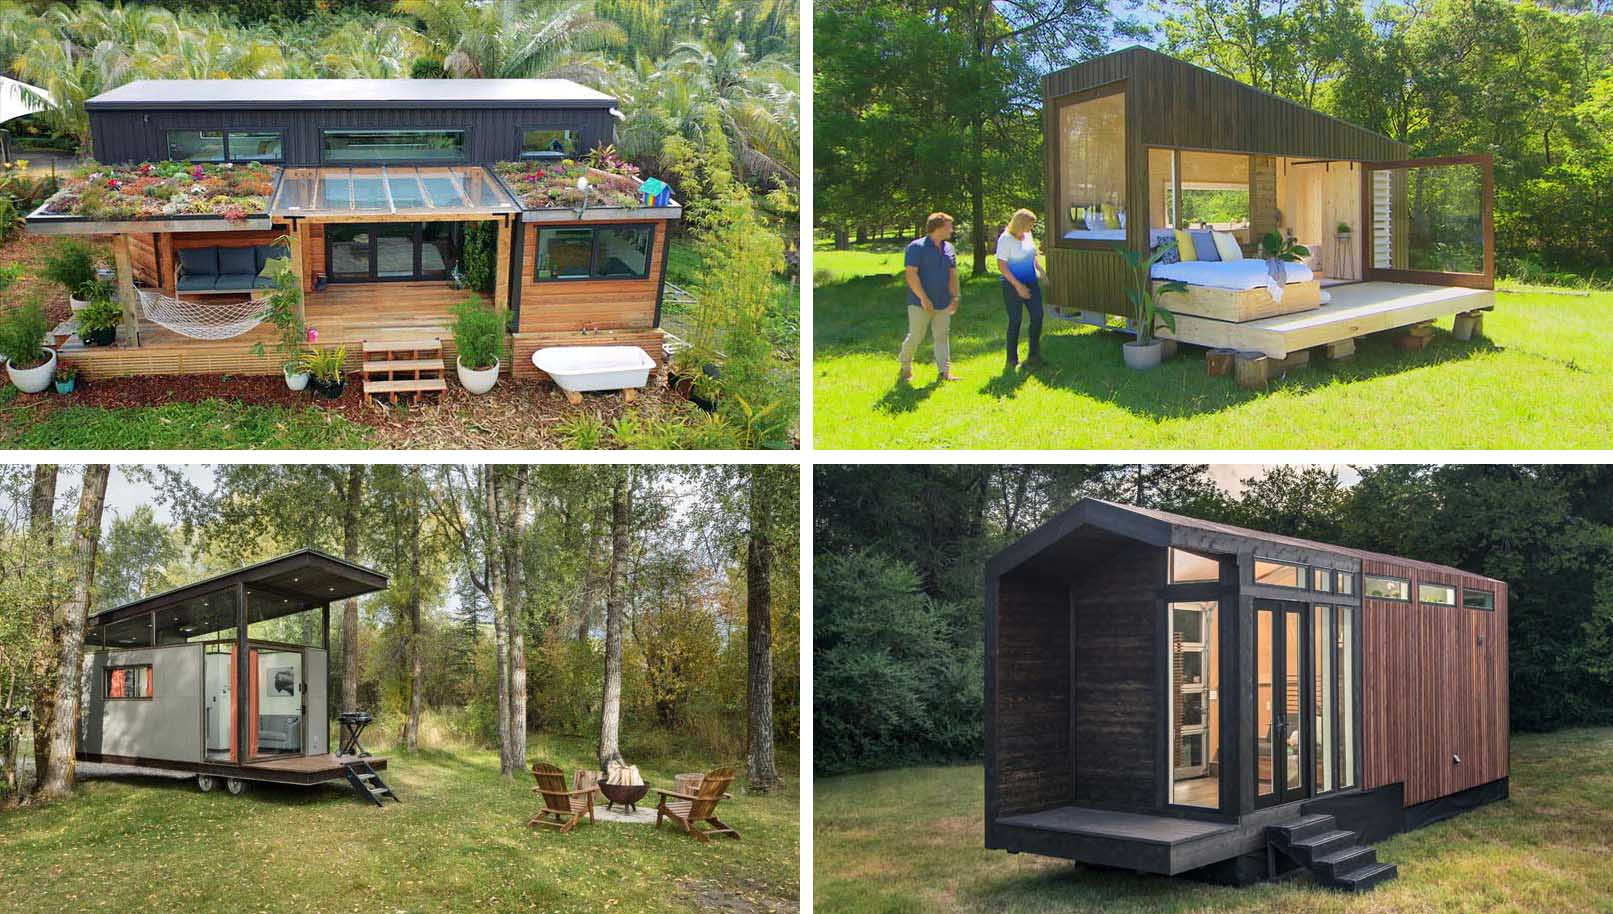 Tiny homes are an alternative way of living small. With a variety of designs and shapes, each of them are unique in their own way and include a variety of features that make the small space very efficient.